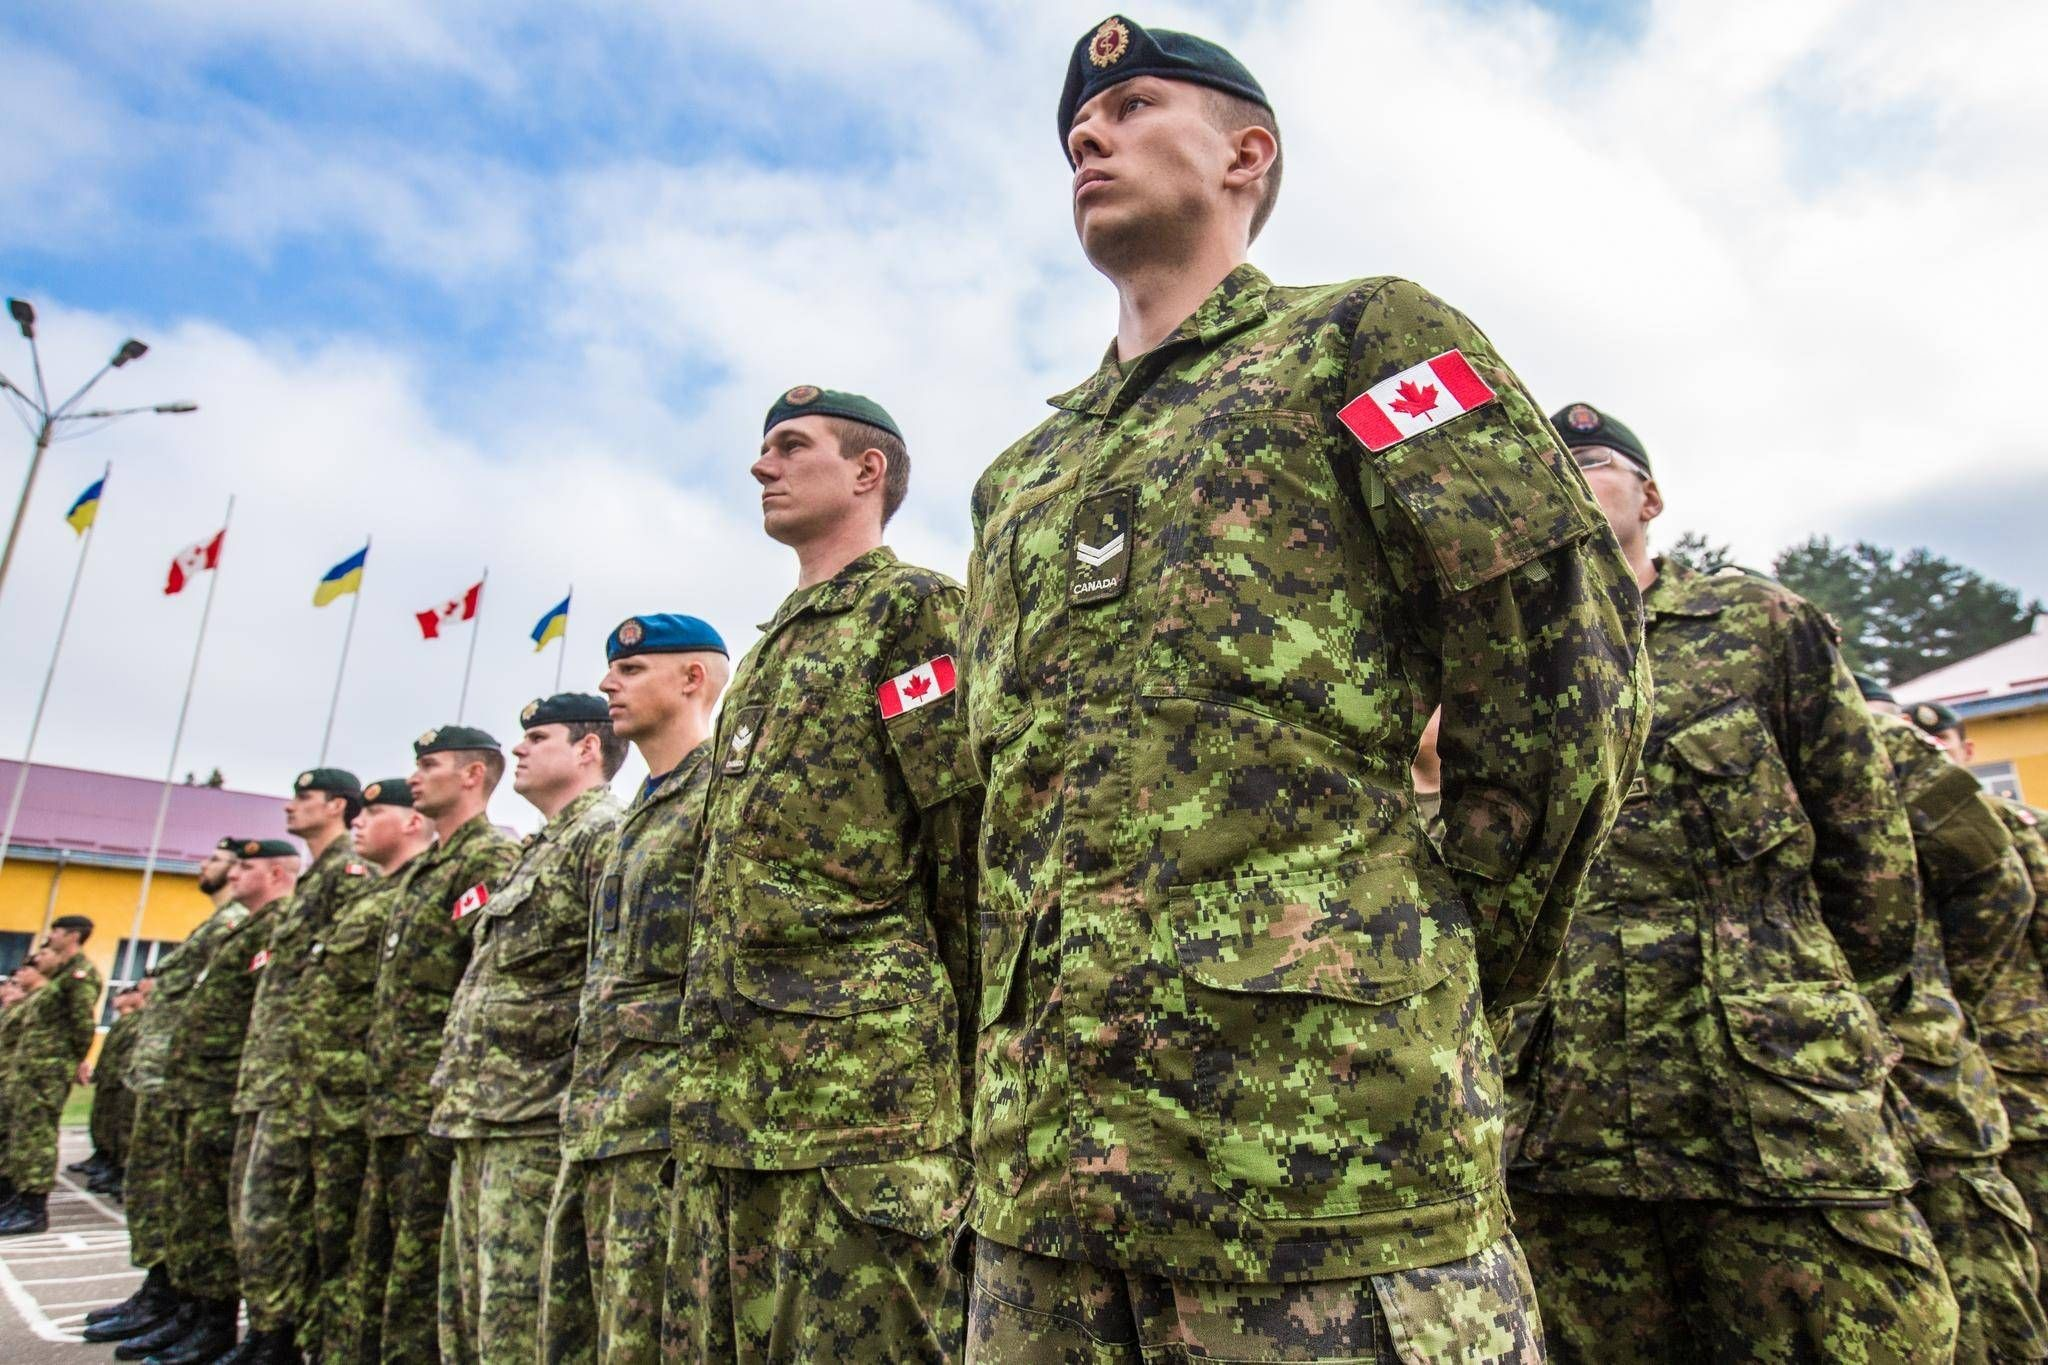 ISIS Claimed Killing Of Canadian Service Members In Chad